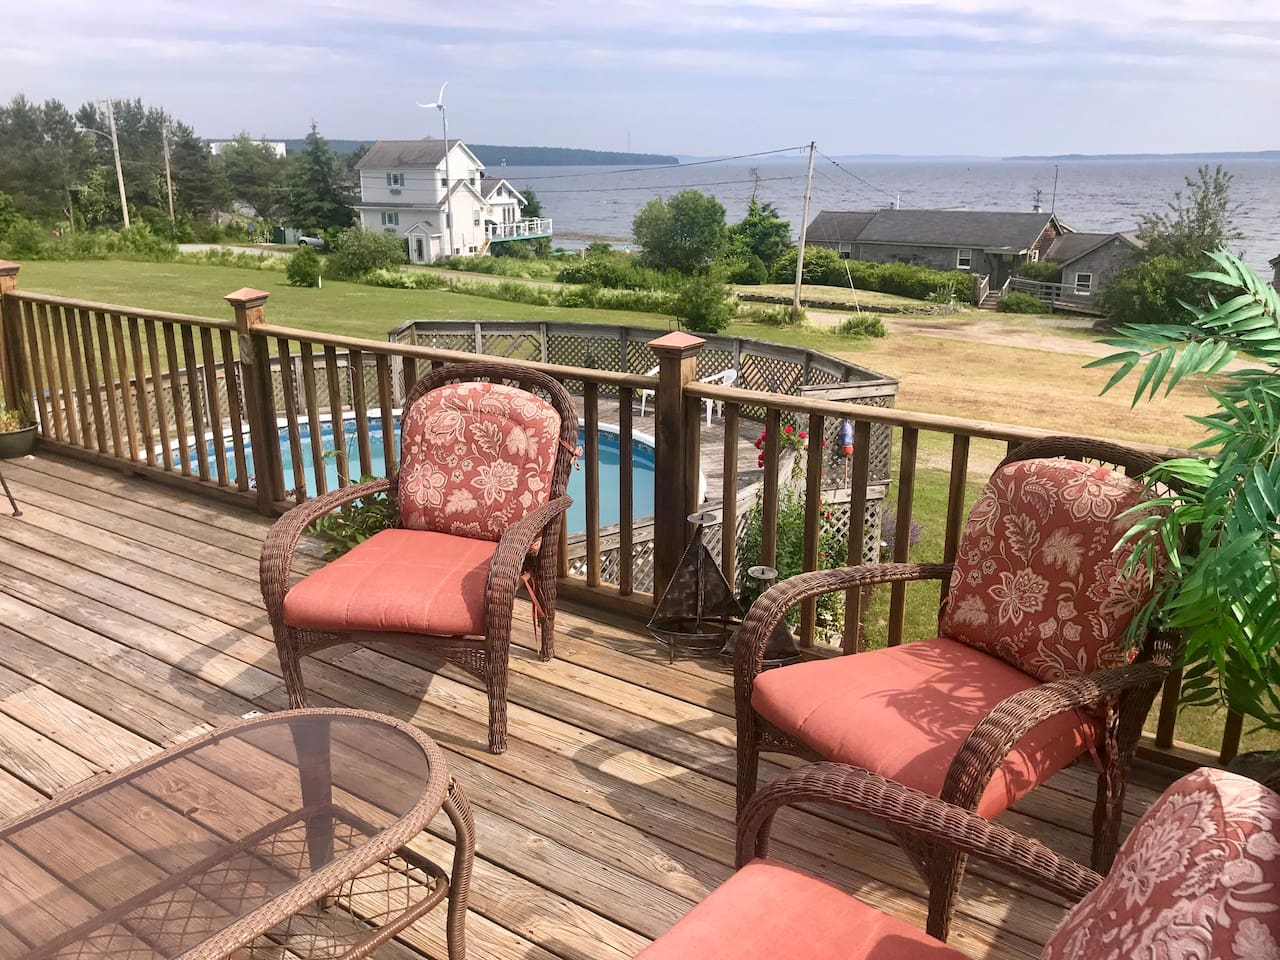 3 BR, 2 Full Bath house with comfortable deck overlooking the Penobscot Bay and private pool.  Shore access for playing on the beach and searching tide pools!